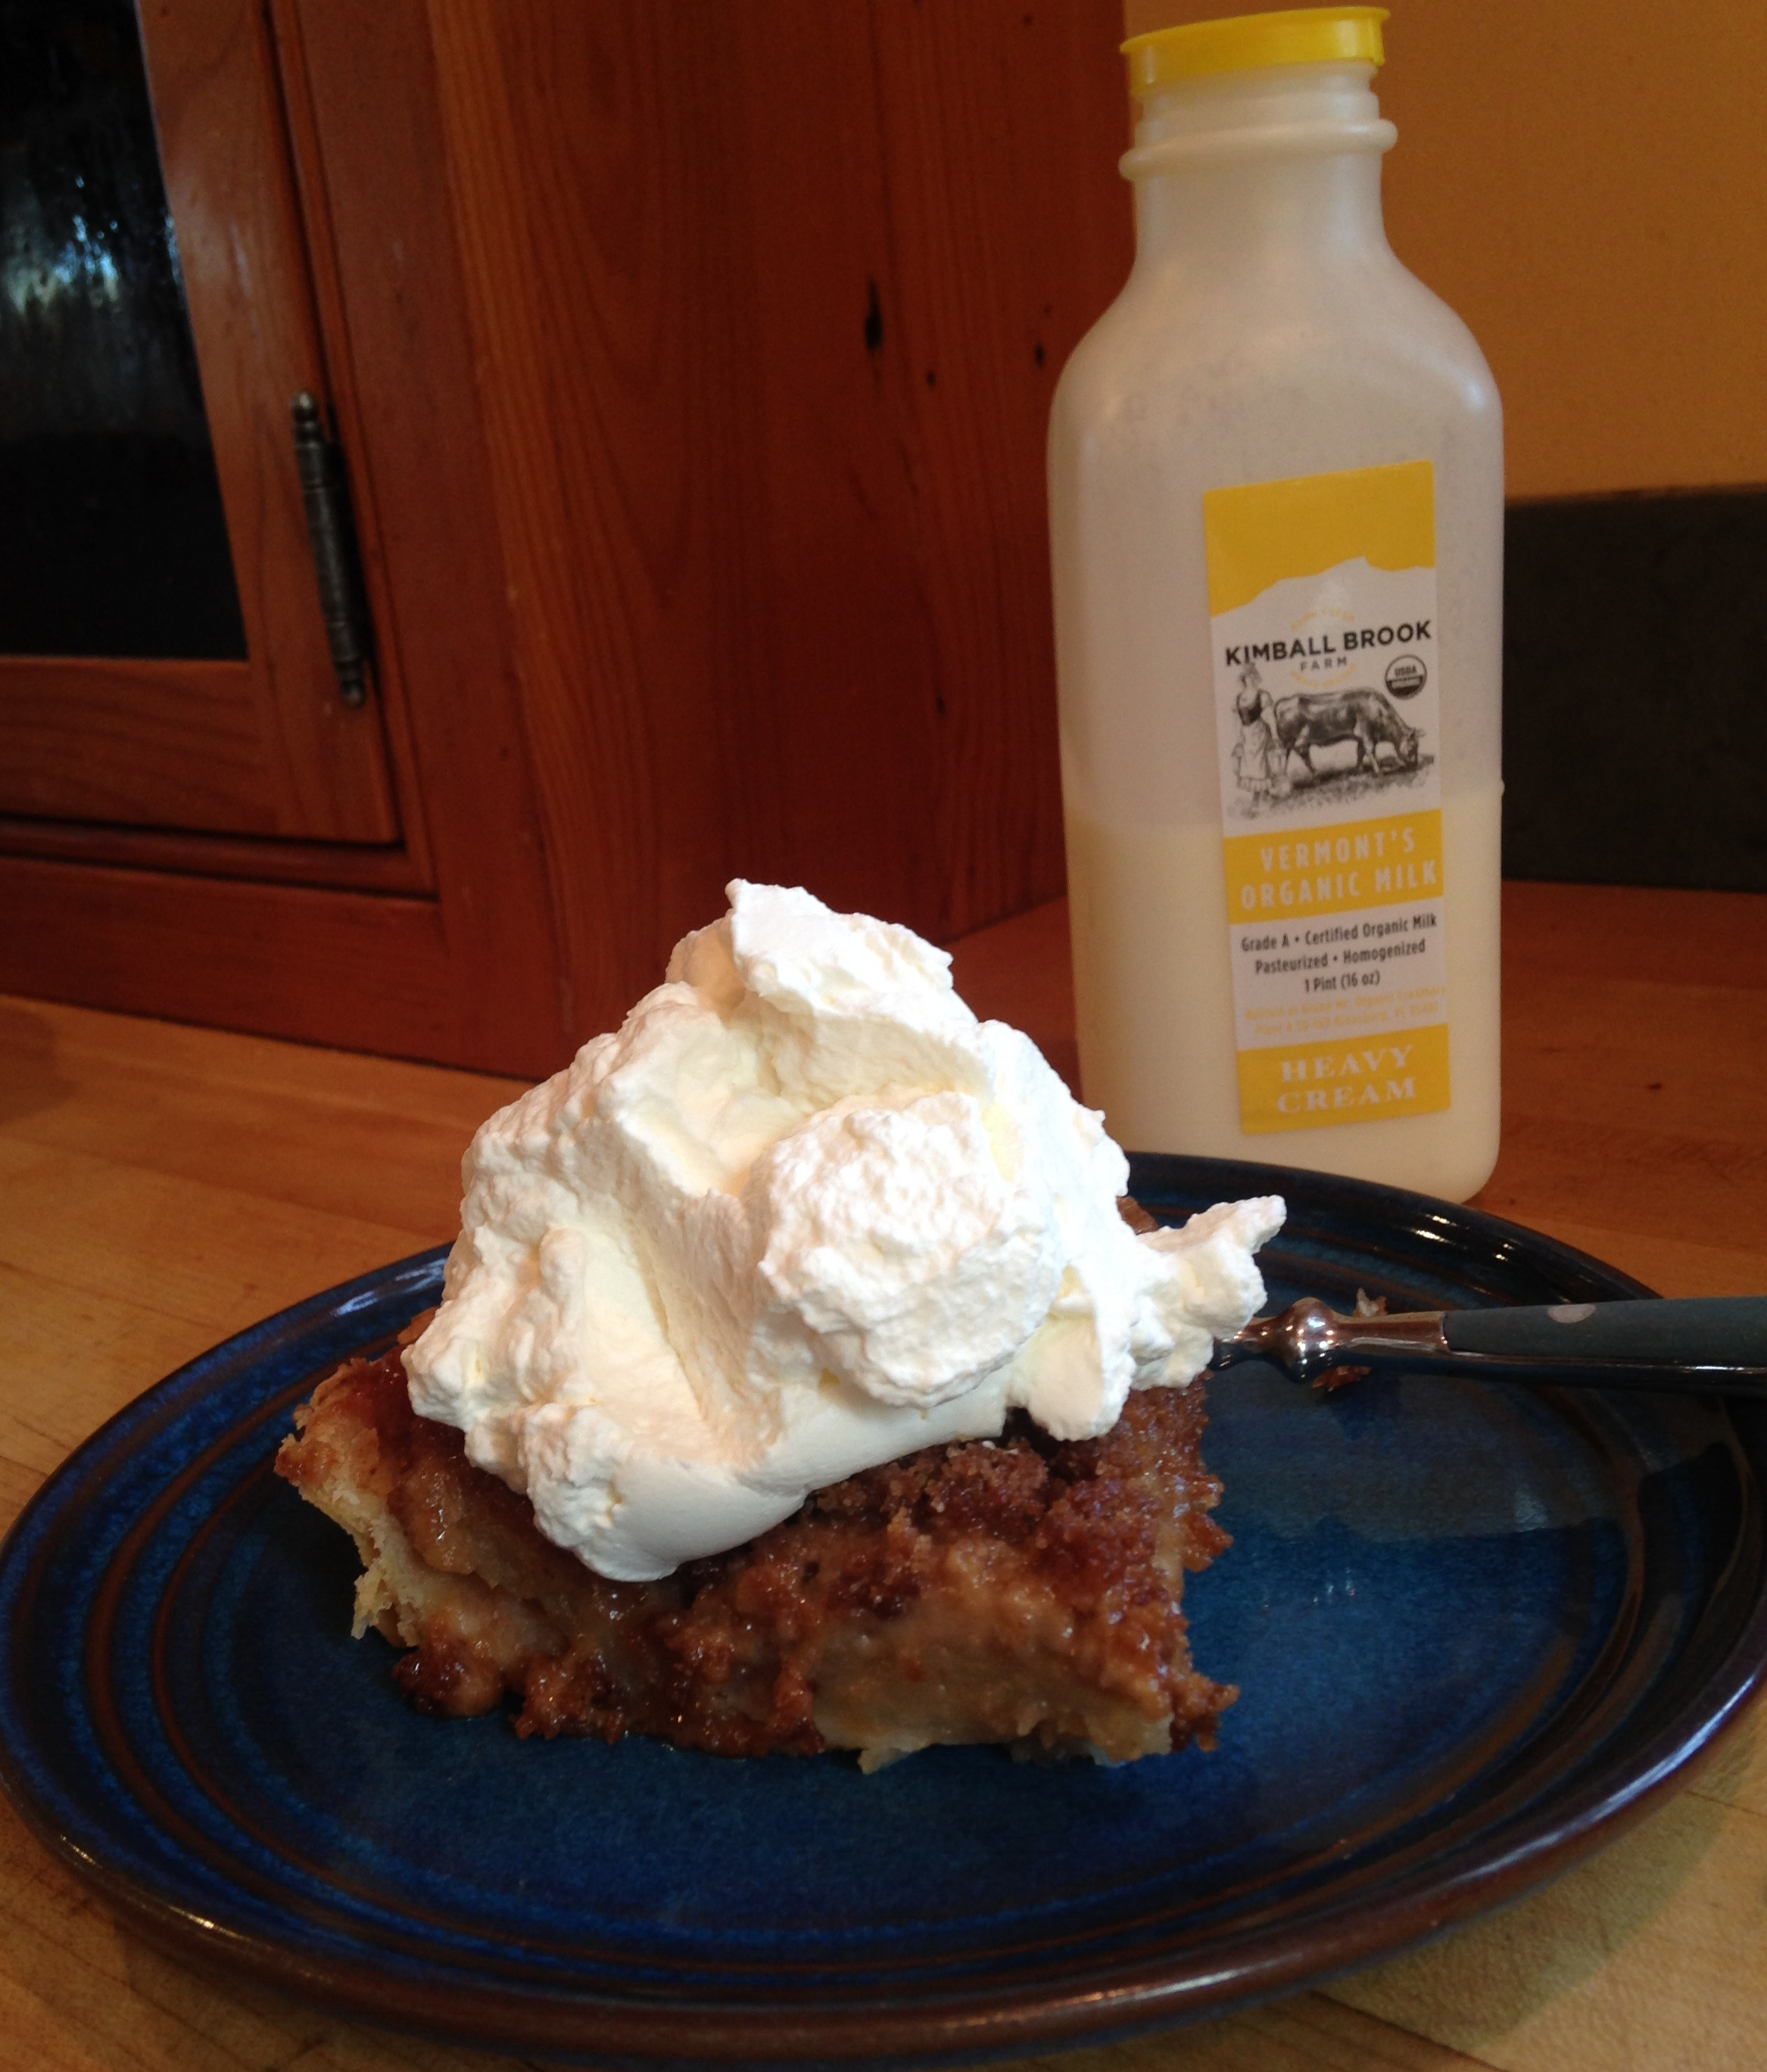 Whipped cream on Apple Crisp